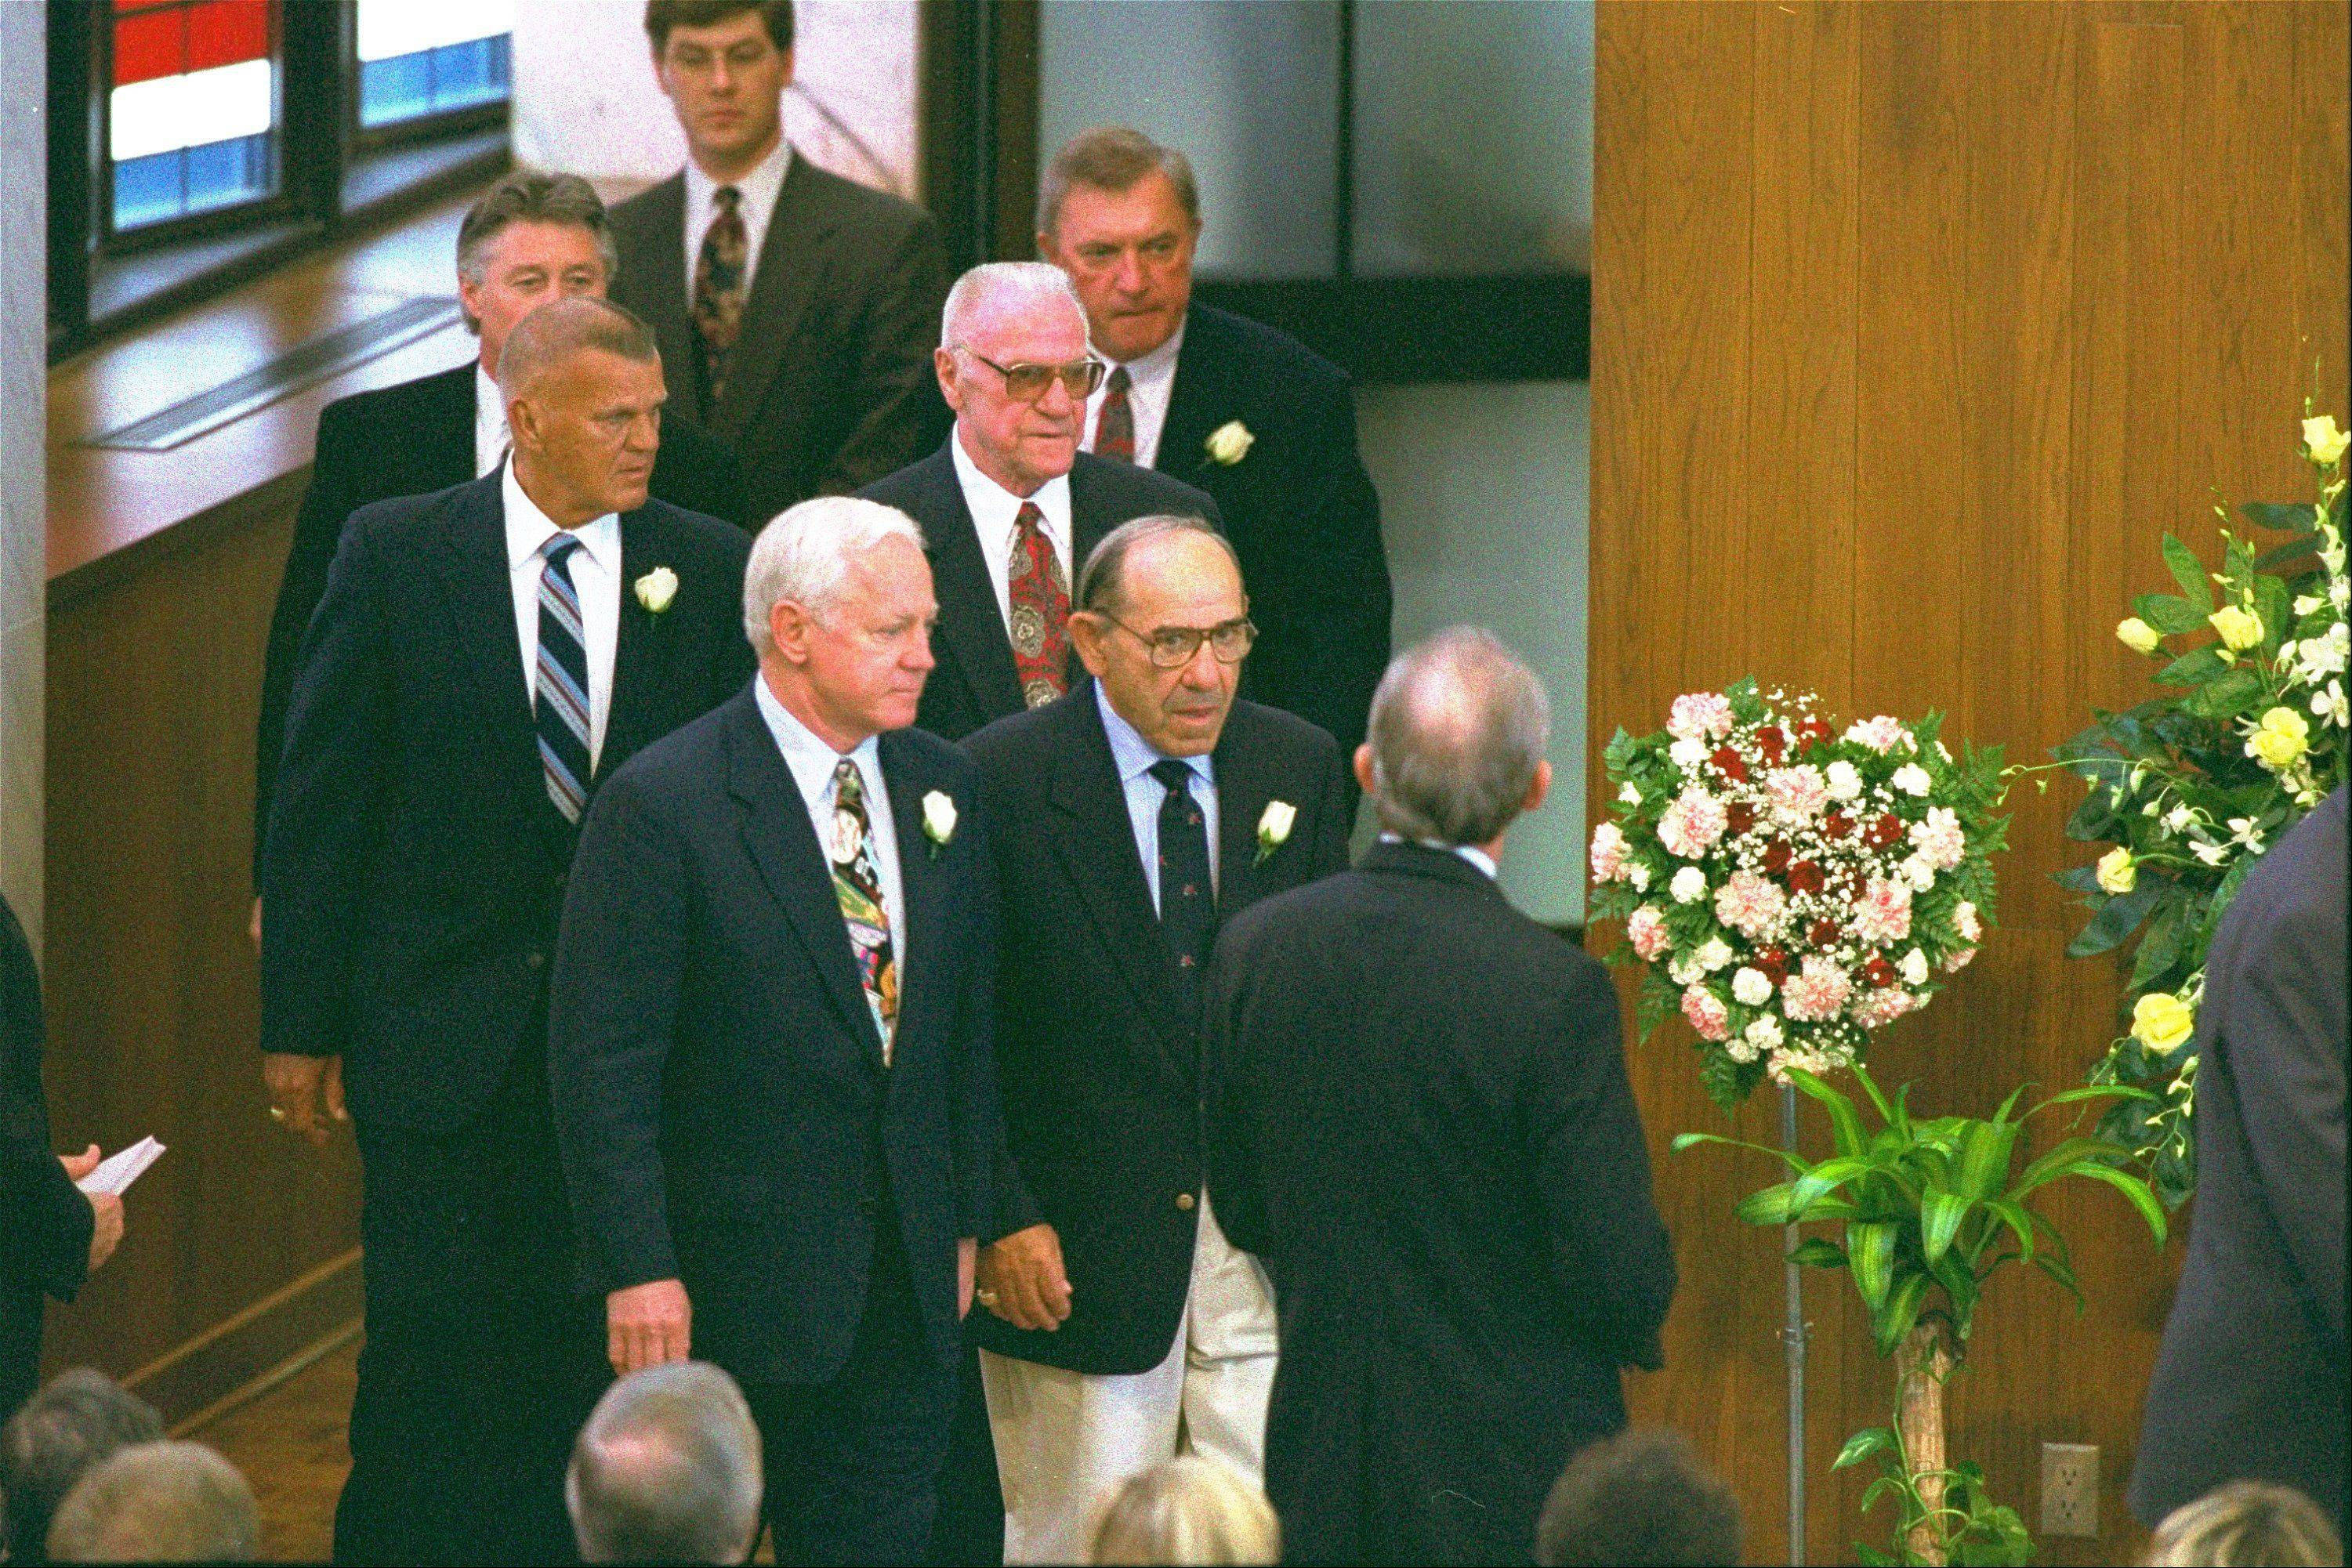 "Former New Yankees Whitey Ford, foreground left, Bill ""Moose"" Skowron, to left of Ford, Bobby Murcer, directly behind Skowron, Yogi Berra, center foreground, Hank Bauer, directly behind Berra, and Johnny Blanchard, behind Bauer to the right, pallbearers for Mickey Mantle who died Sunday of liver cancer at age 63, arrive at the Lovers Lane United Methodist Church for the funeral of baseball great Mickey Mantle in Dallas Tuesday, August 15, 1995."